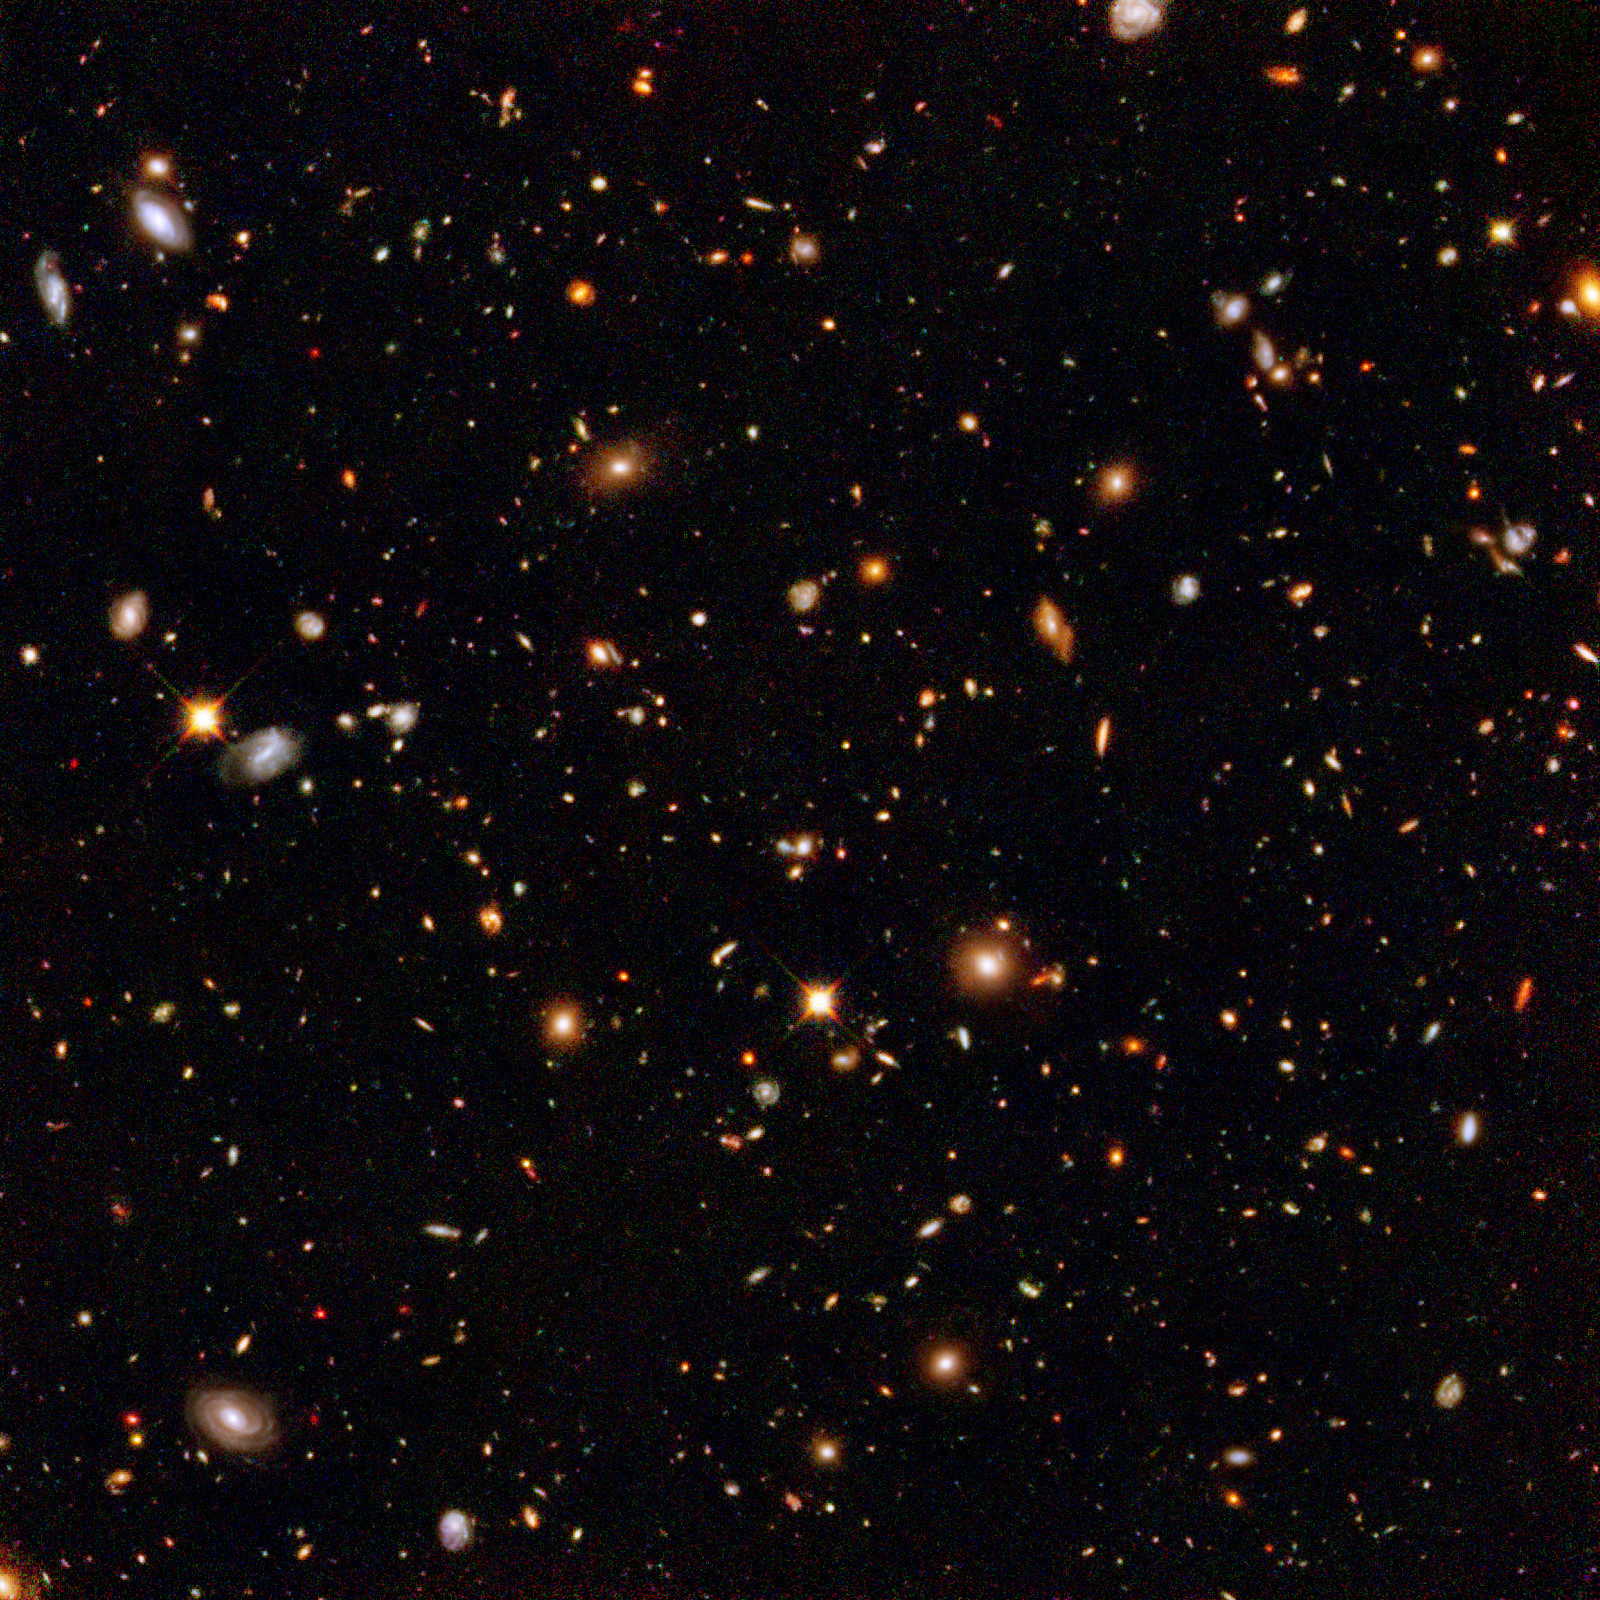 This infrared view reveals galaxies far, far away that existed long, long ago. Taken by the Near Infrared Camera and Multi-Object Spectrometer aboard the NASA/ESA Hubble Space Telescope, the image is part of the Hubble Ultra Deep Field survey, the deepest portrait ever taken of the universe. Image credit: NASA , ESA and R. Thompson (Univ. Arizona)